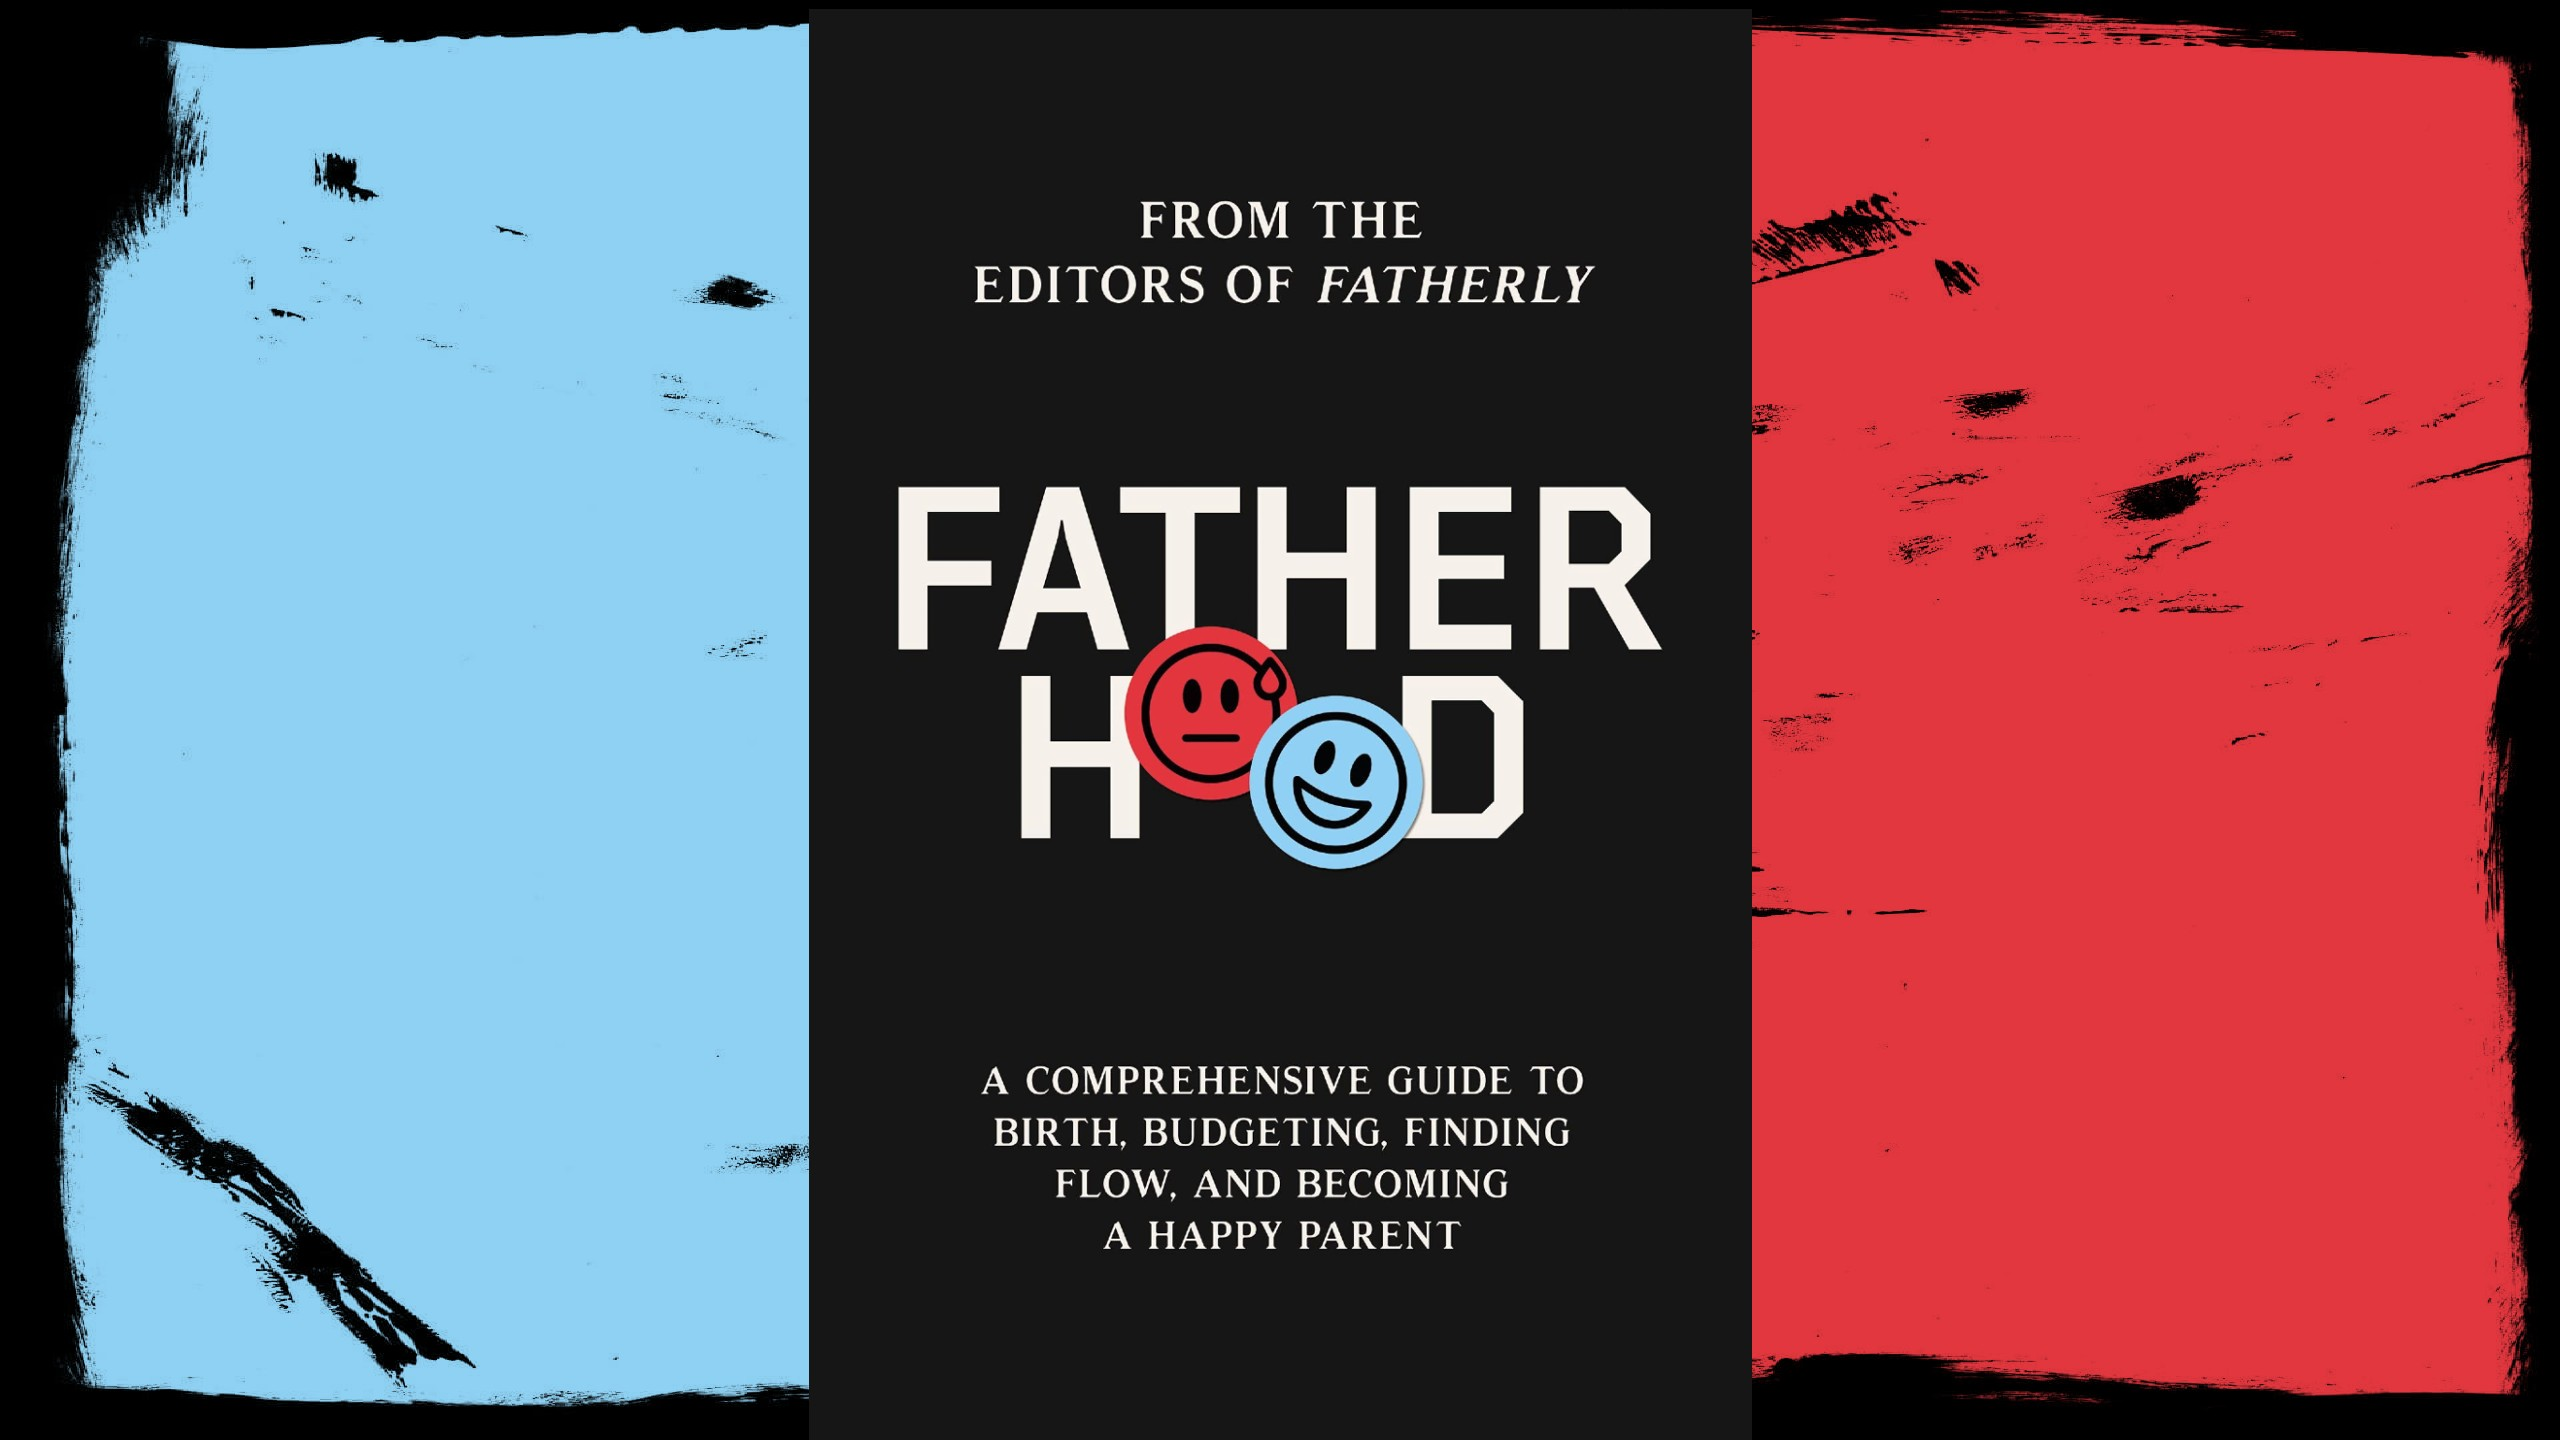 """Fatherly's """"Fatherhood: A Comprehensive Guide to Birth, Budgeting, Finding Flow, and Becoming a Happy Parent"""" hits virtual shelves November 9th"""